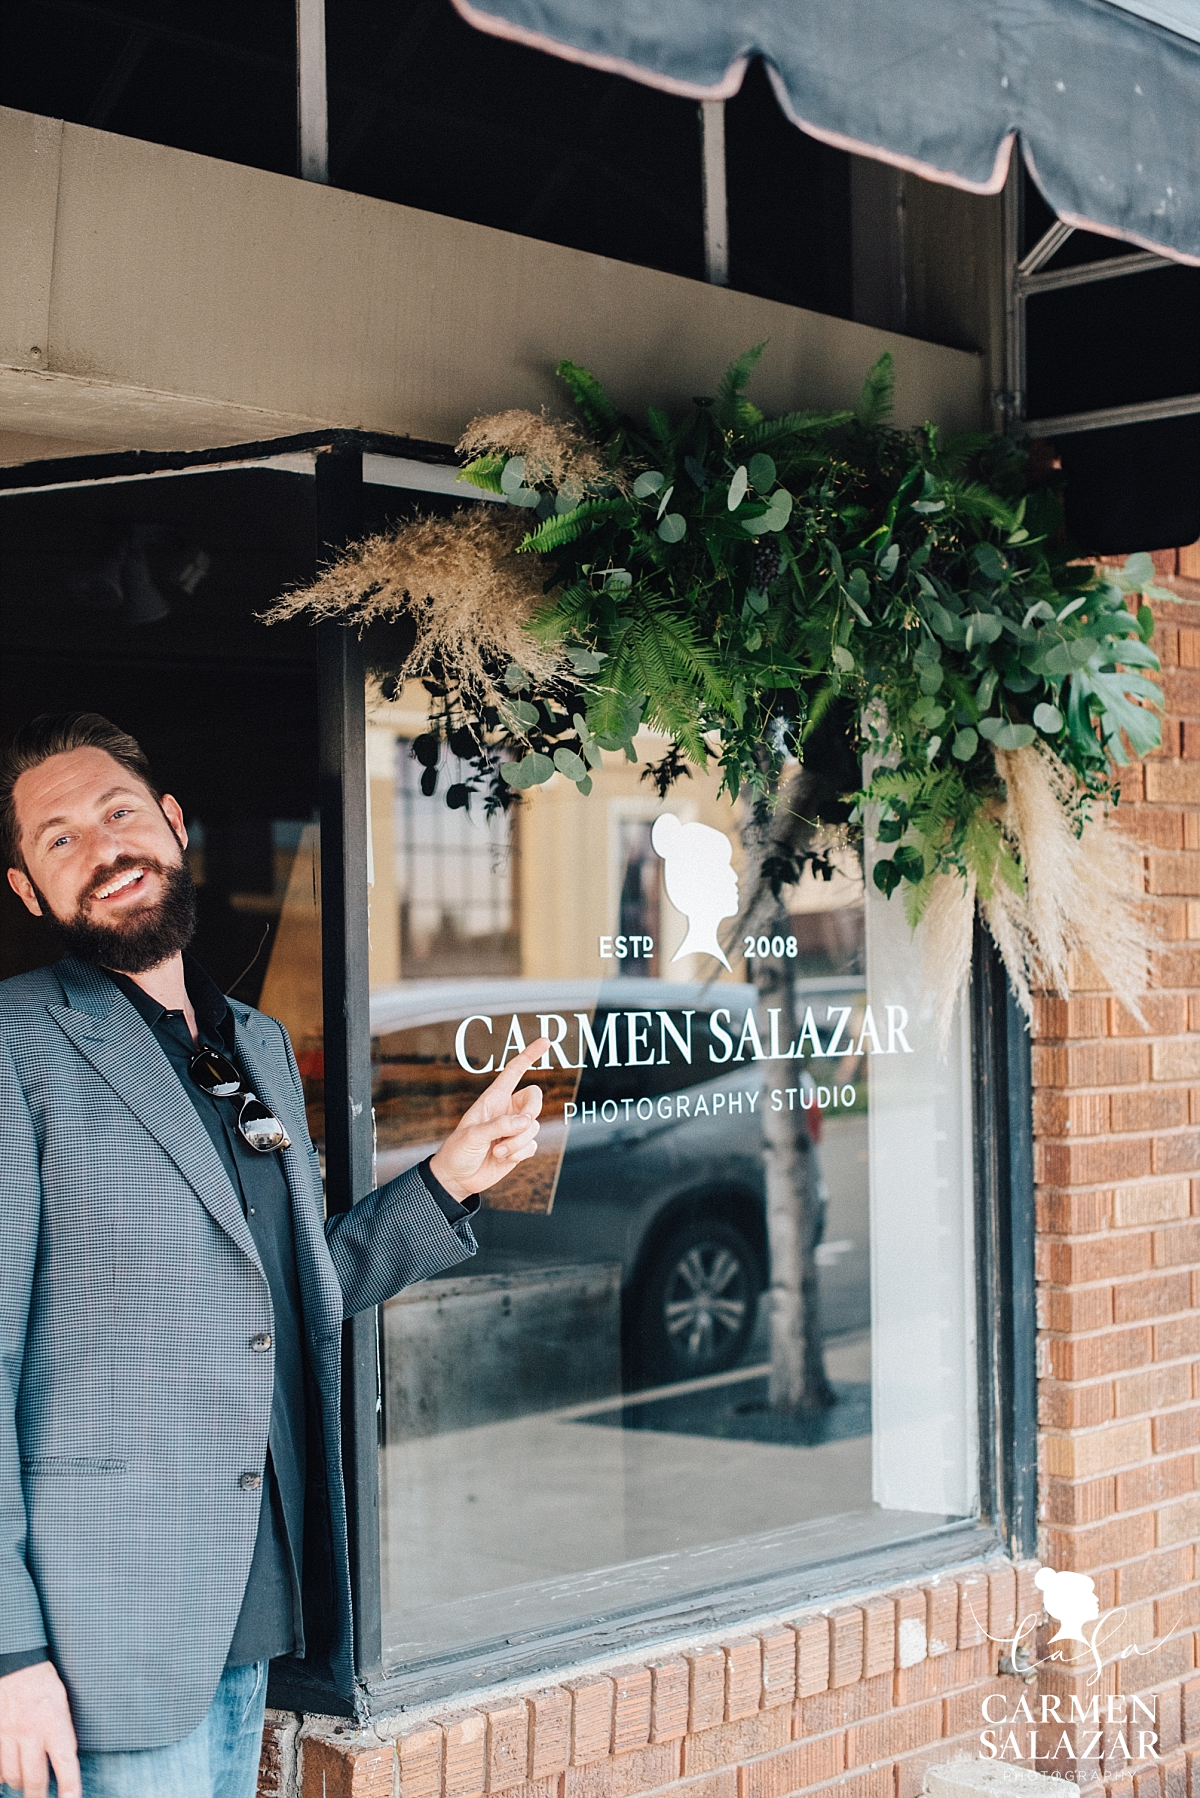 New sign for photography studio grand opening - Carmen Salazar